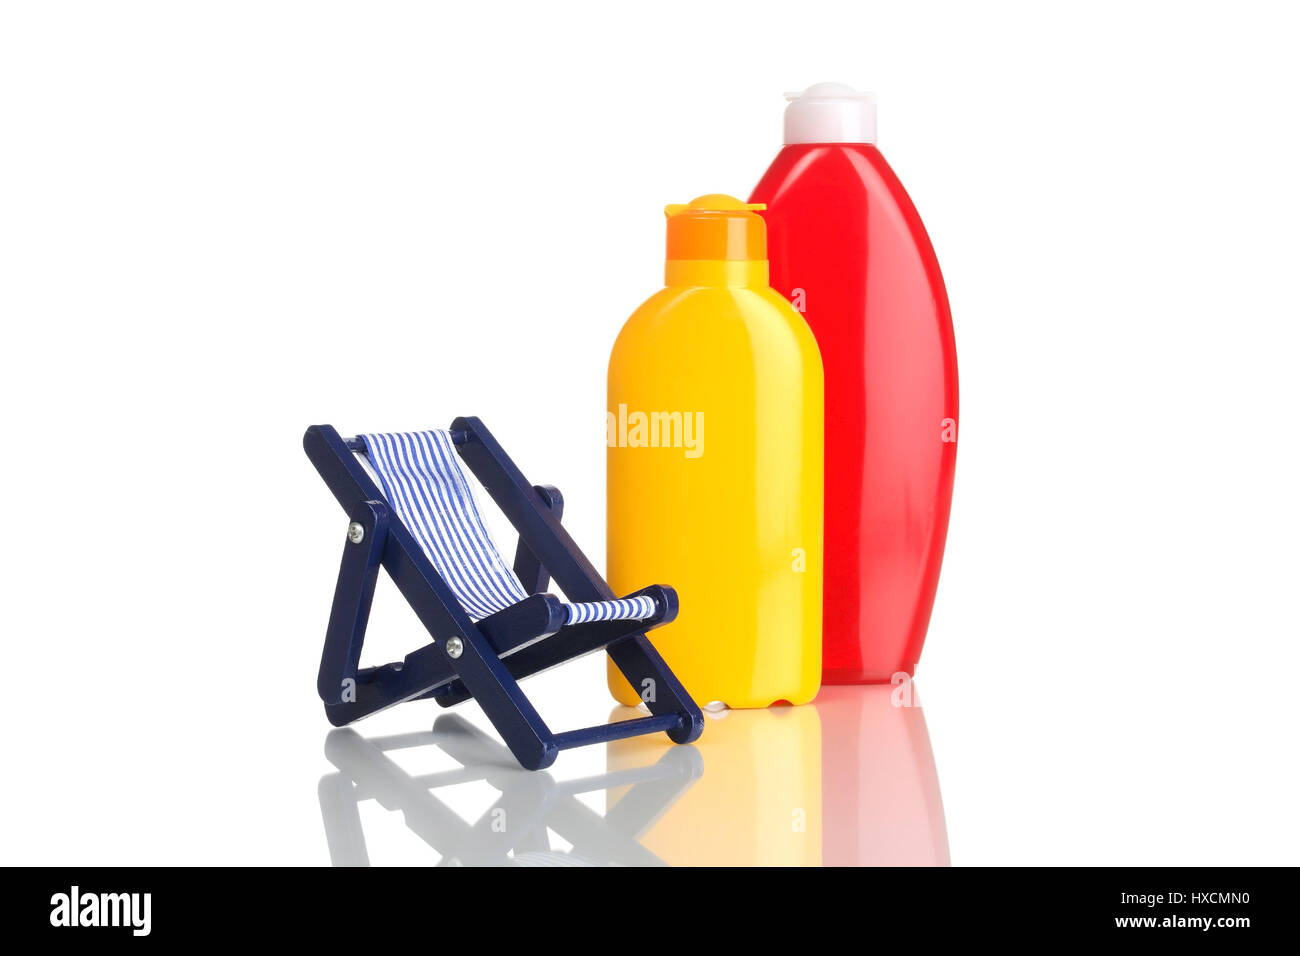 Kosmetik Liegestuhl Koerperlotion Stock Photos Koerperlotion Stock Images Alamy